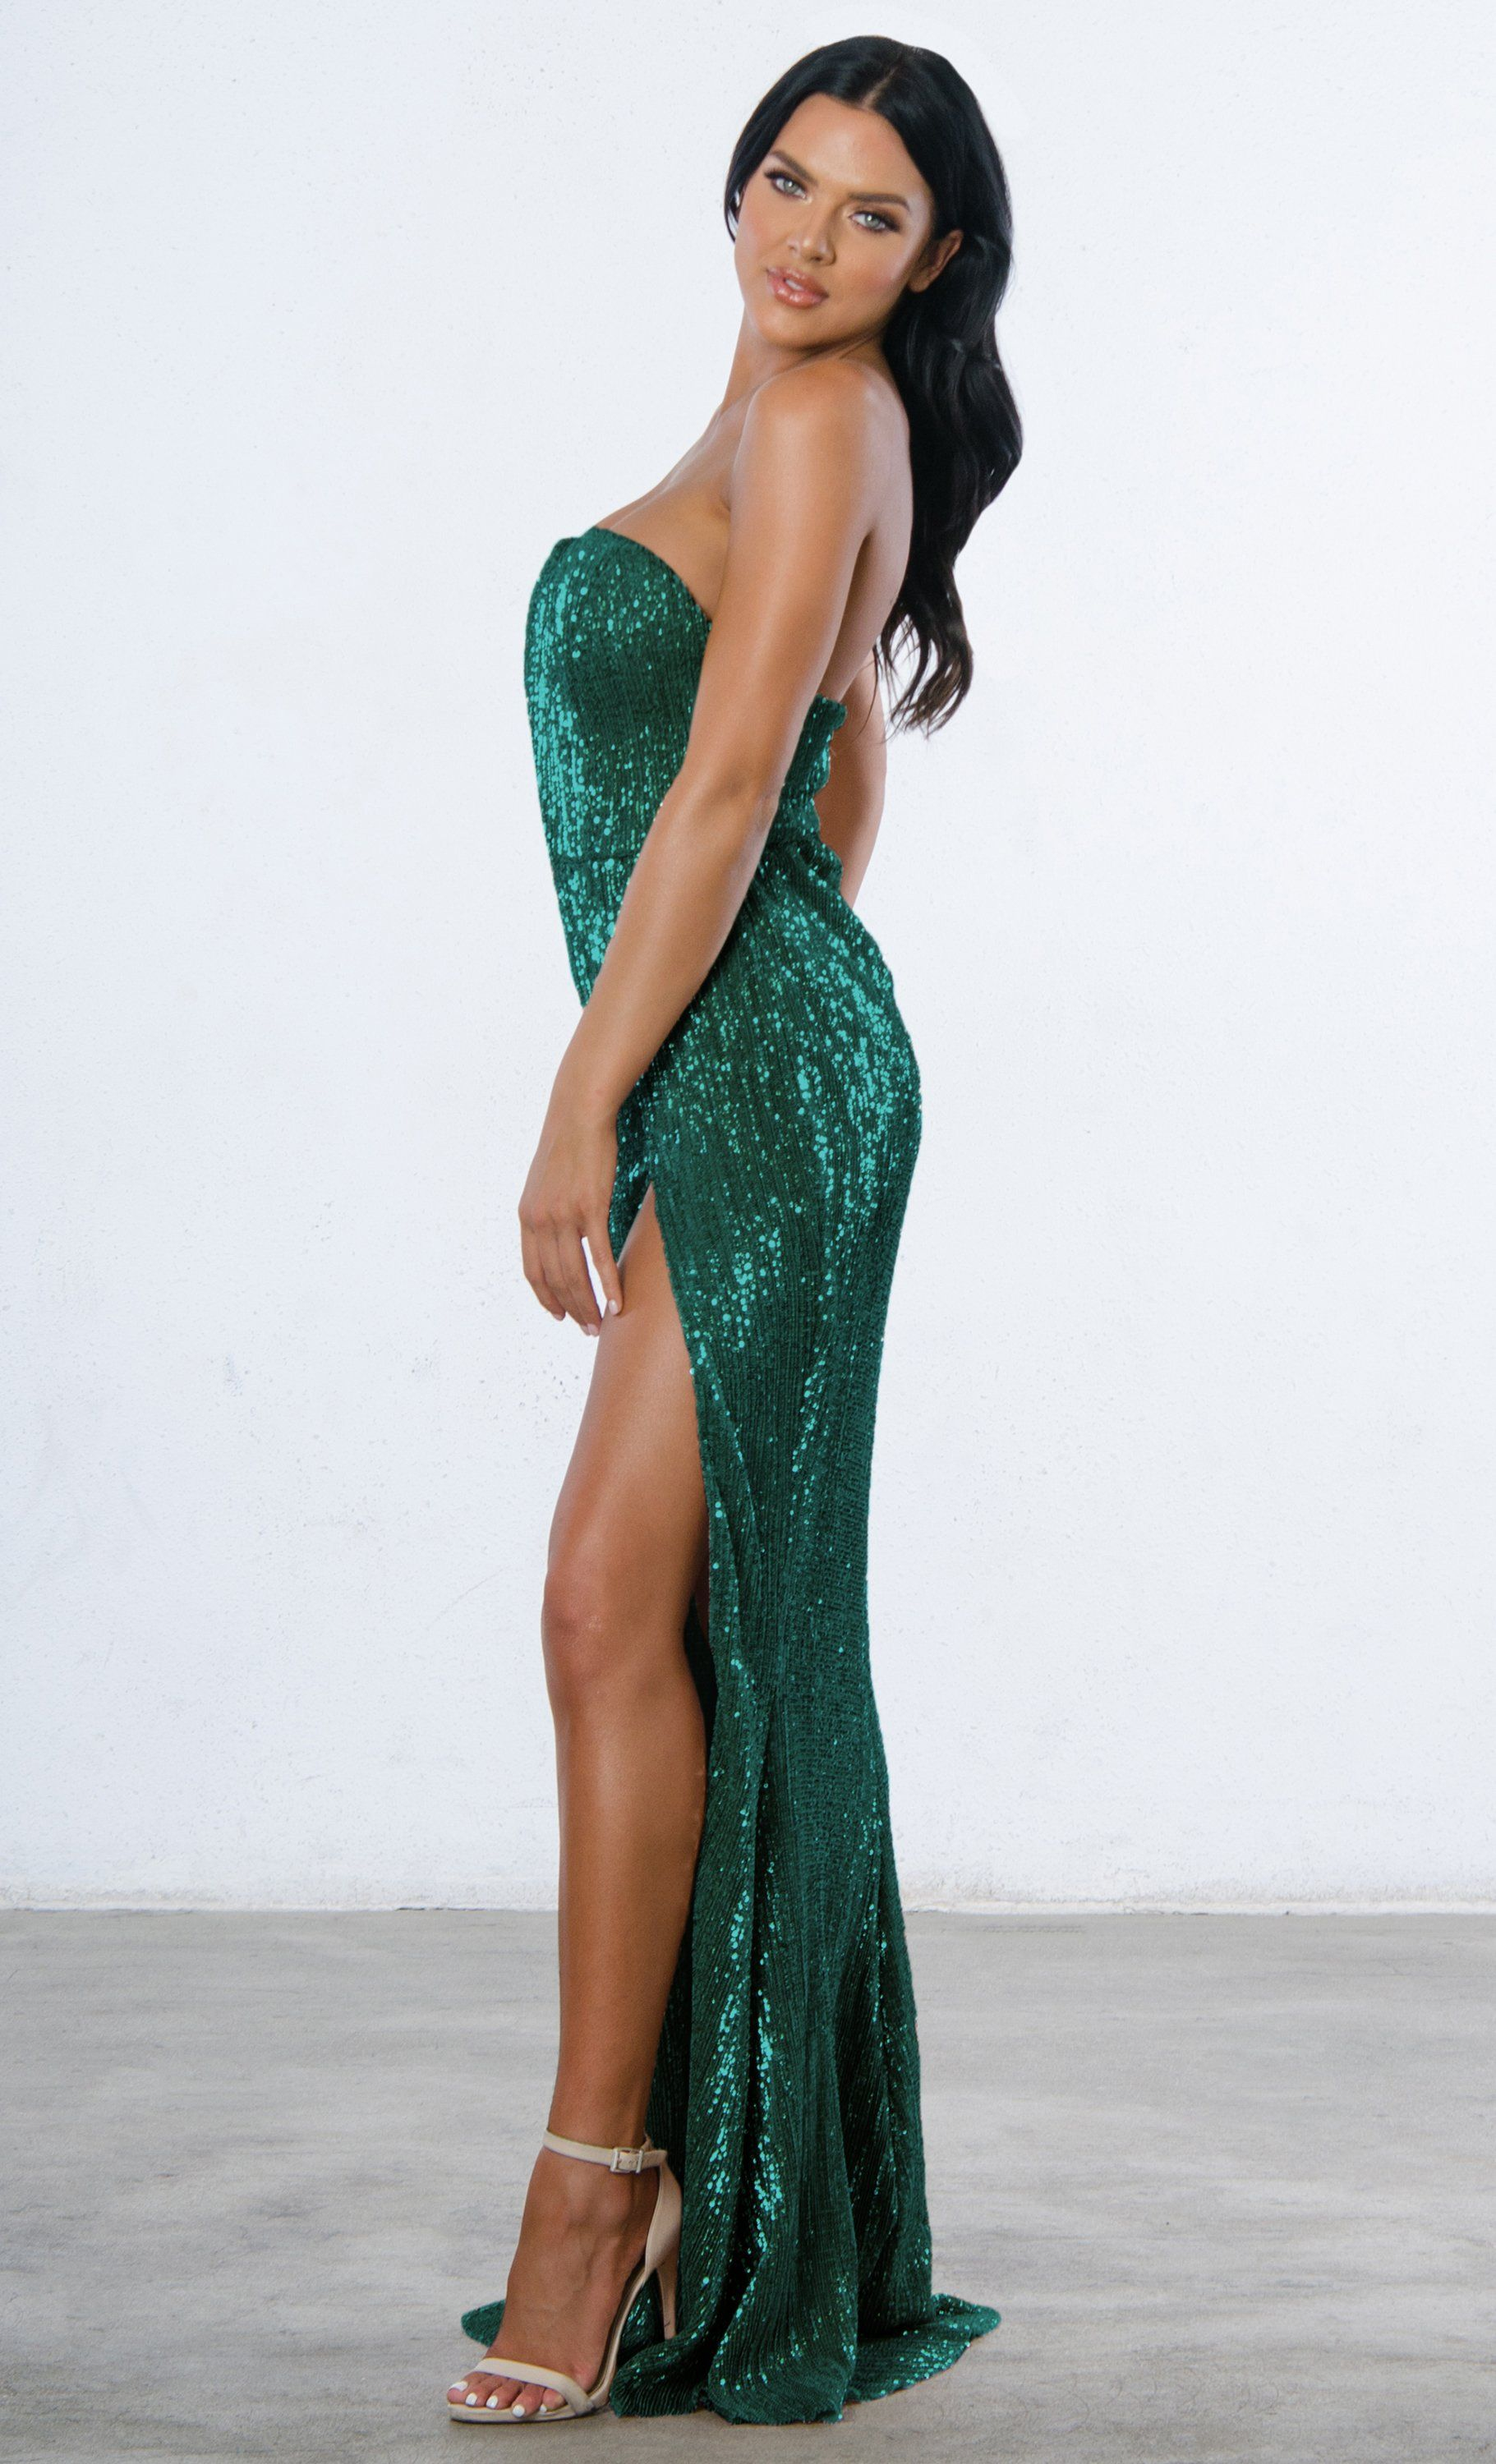 dd8939e1e0c0 Indie XO Show Me Some Love Sequin Strapless Sweetheart Neck High Slit